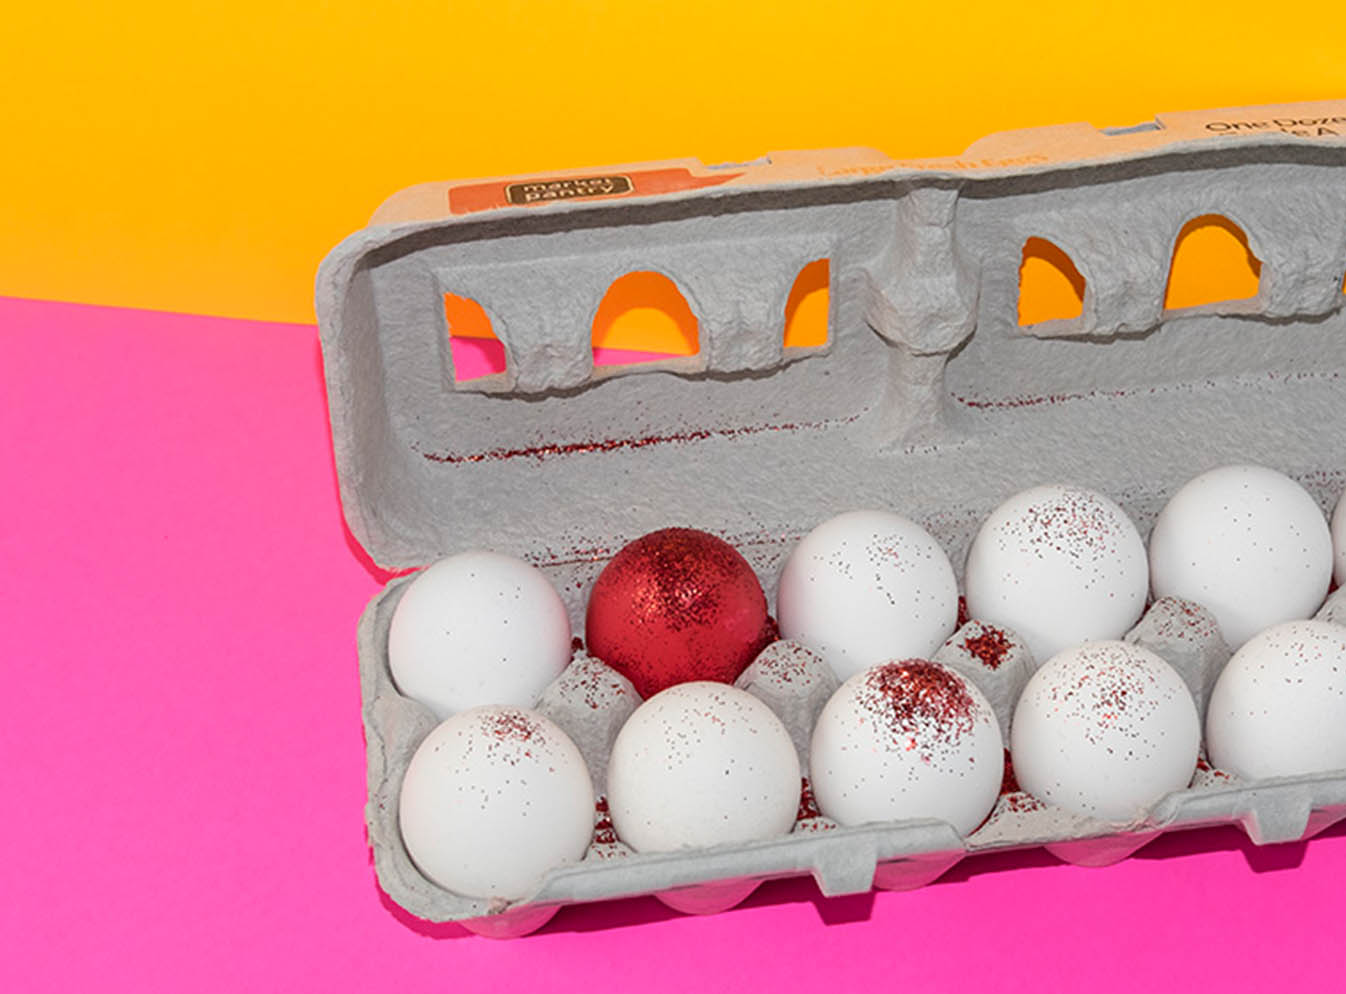 Carton of eggs with one red egg